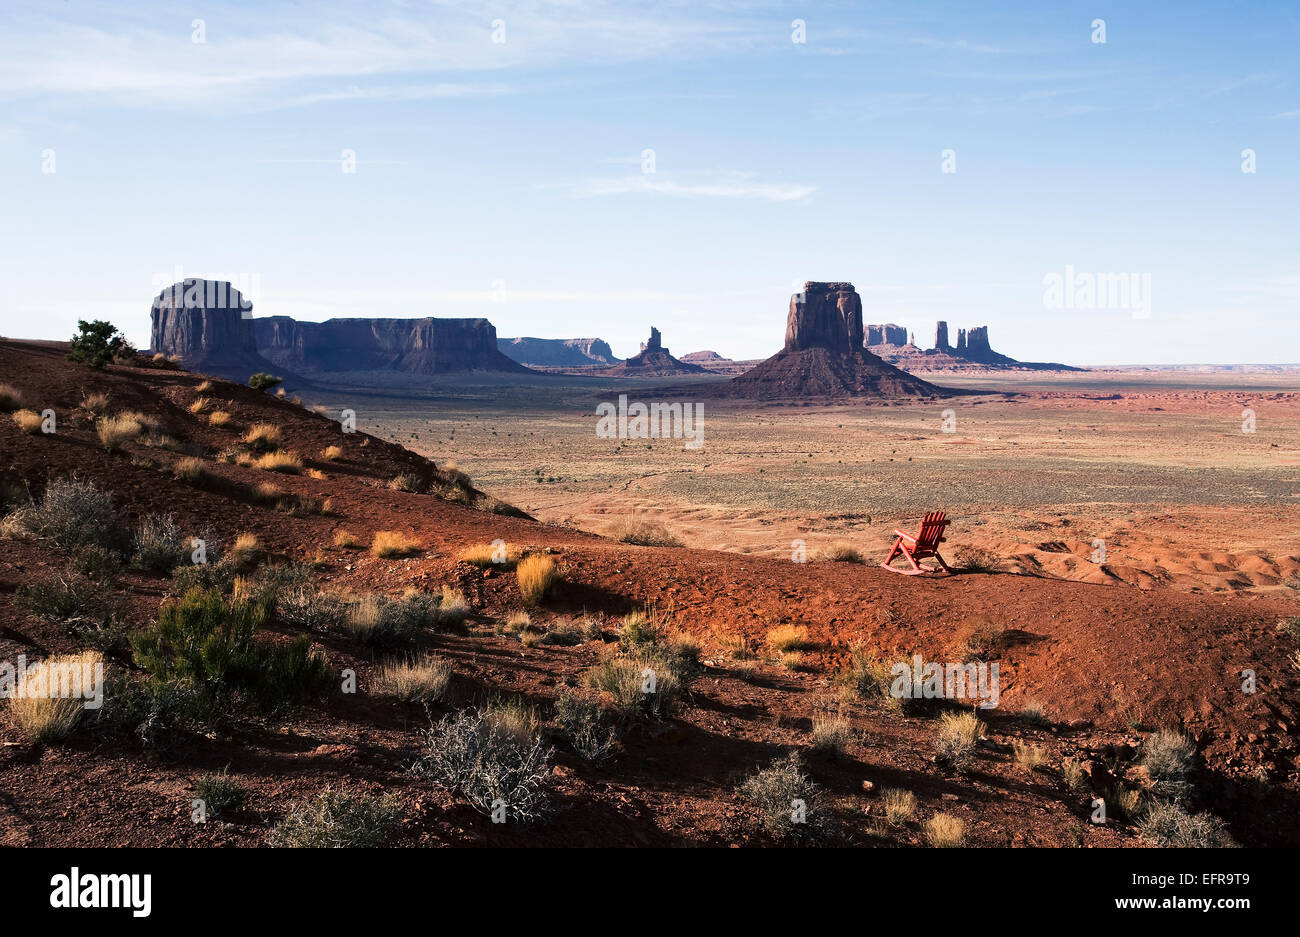 The landscape and eroded sandstone buttes and structure of Monument Valley. A single wooden chair. - Stock Image